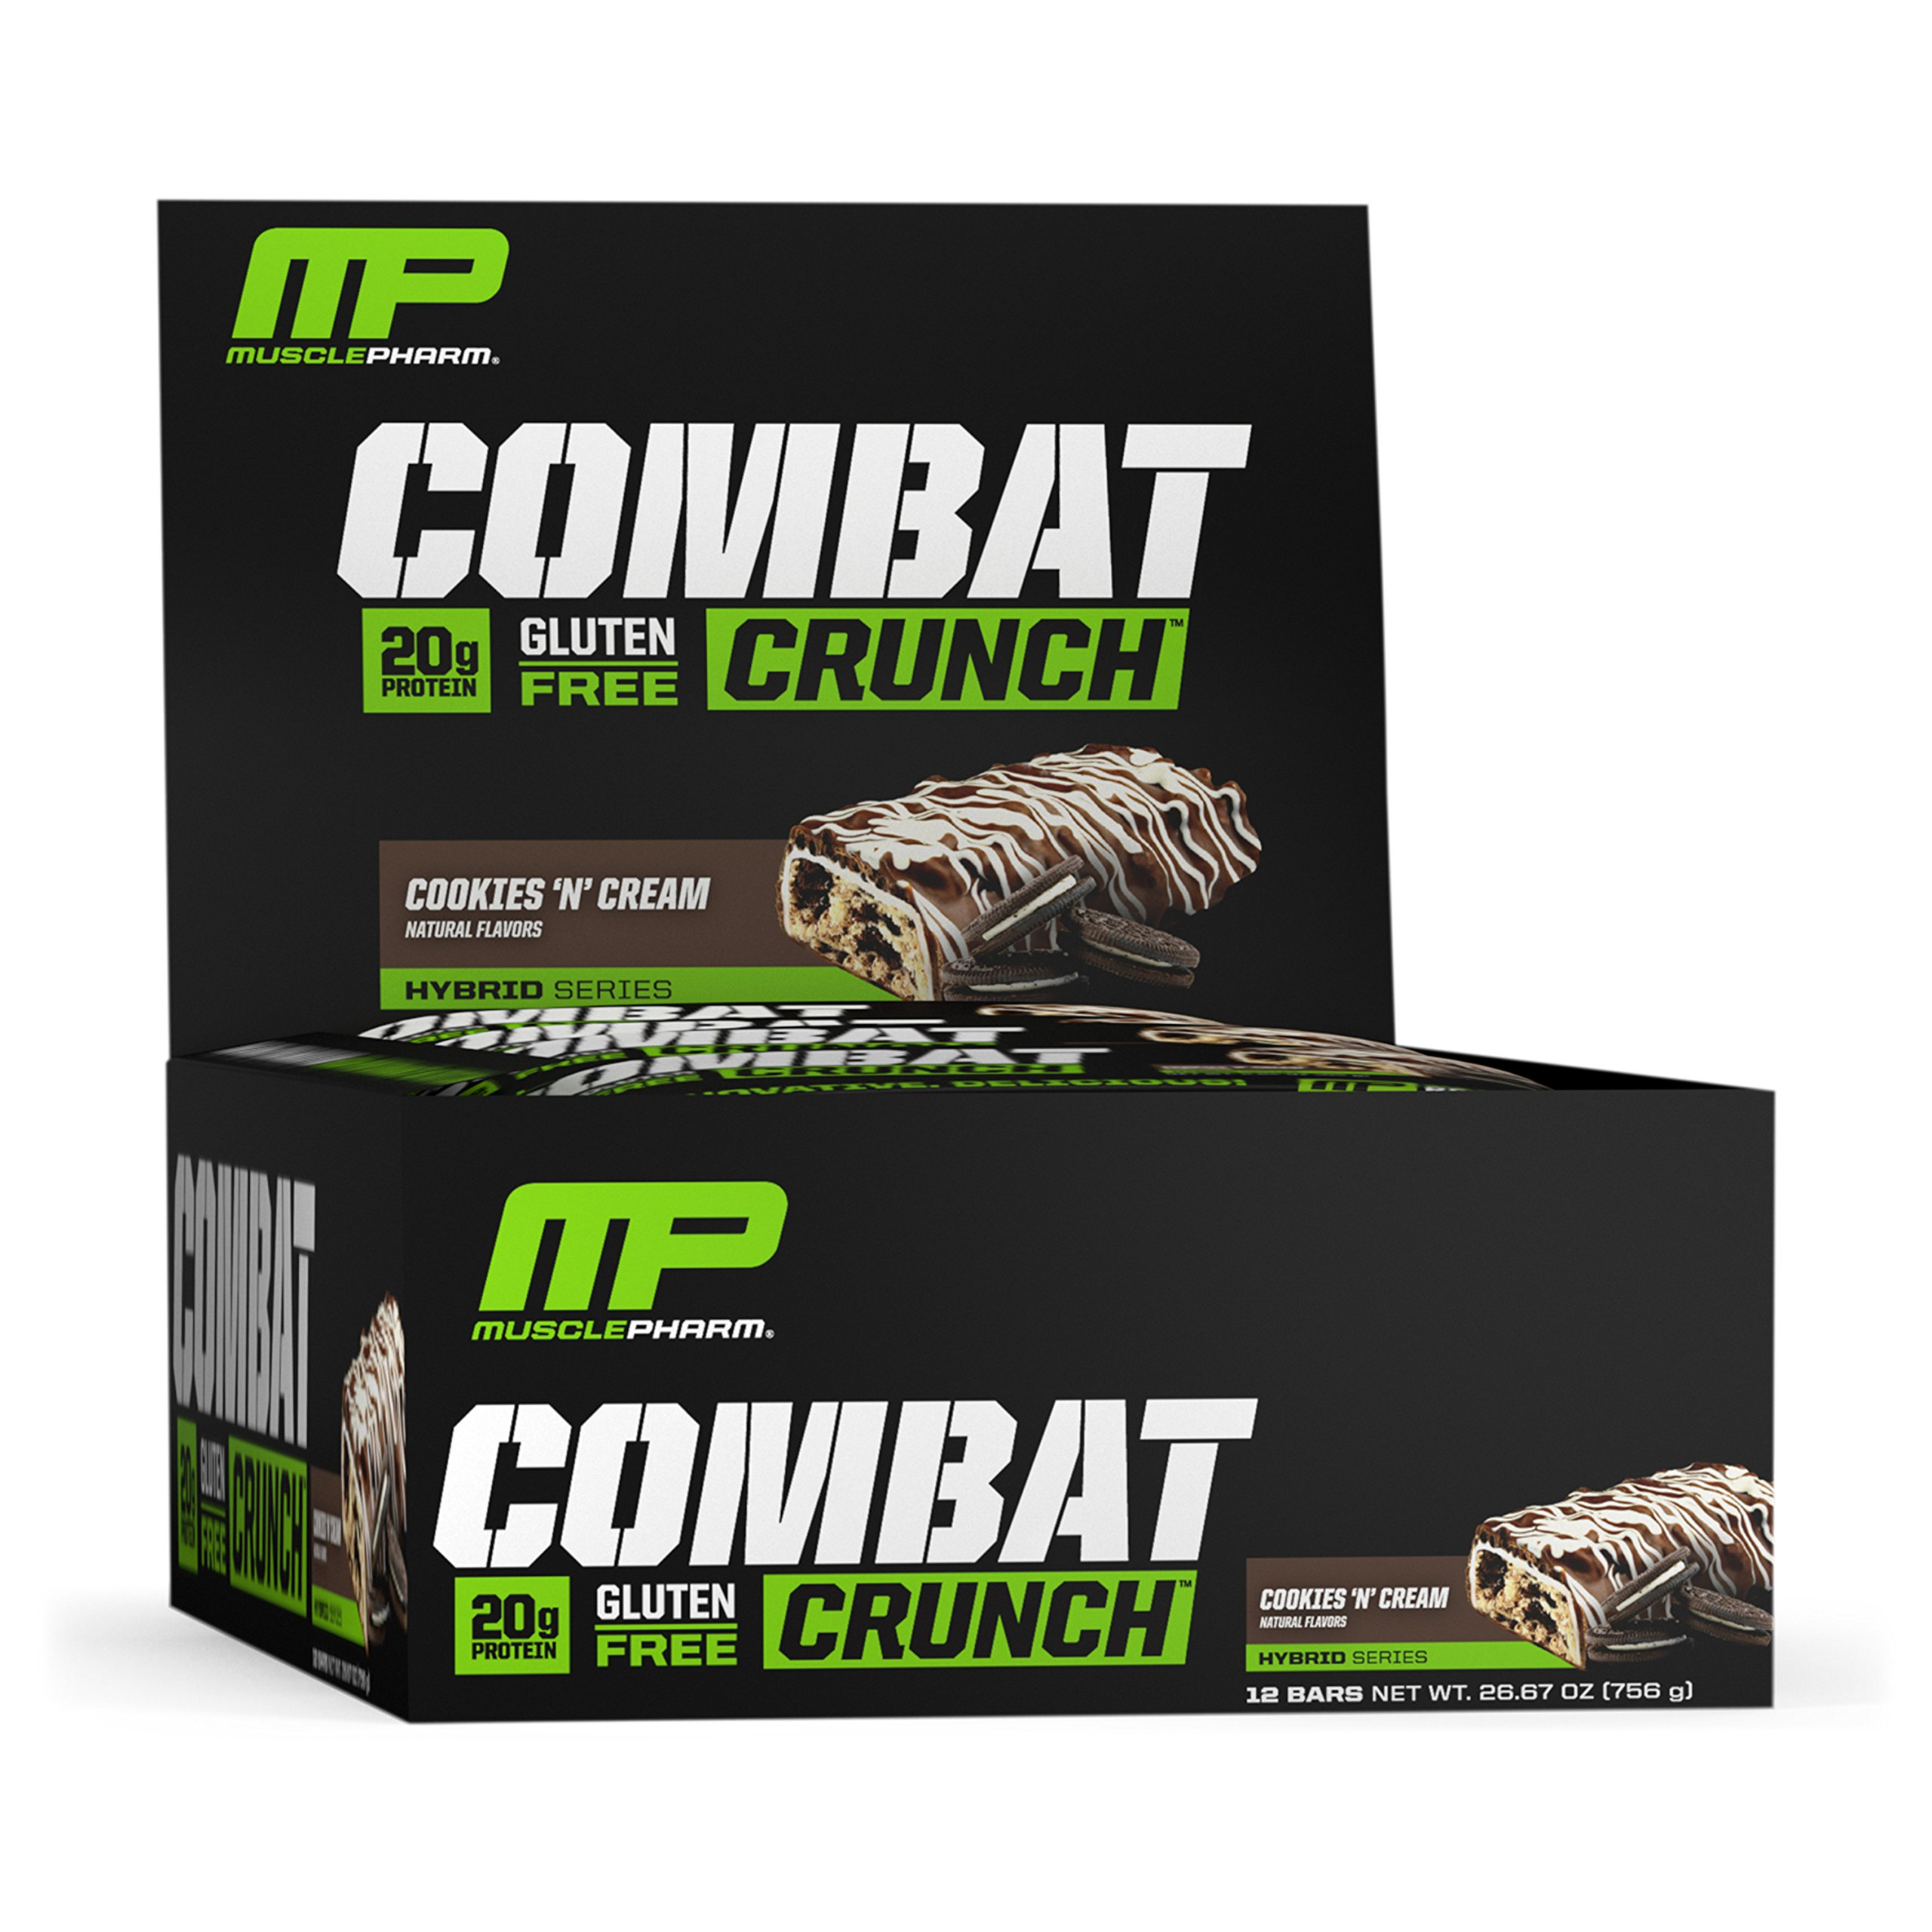 MusclePharm Combat Crunch Protein Bar, Multi-Layered Baked Bar, Gluten-Free Bars, 20 g Protein, Low-Sugar, Low-Carb, Gluten-Free, Cookies 'N' Cream Bars, 12 Servings by Muscle Pharm